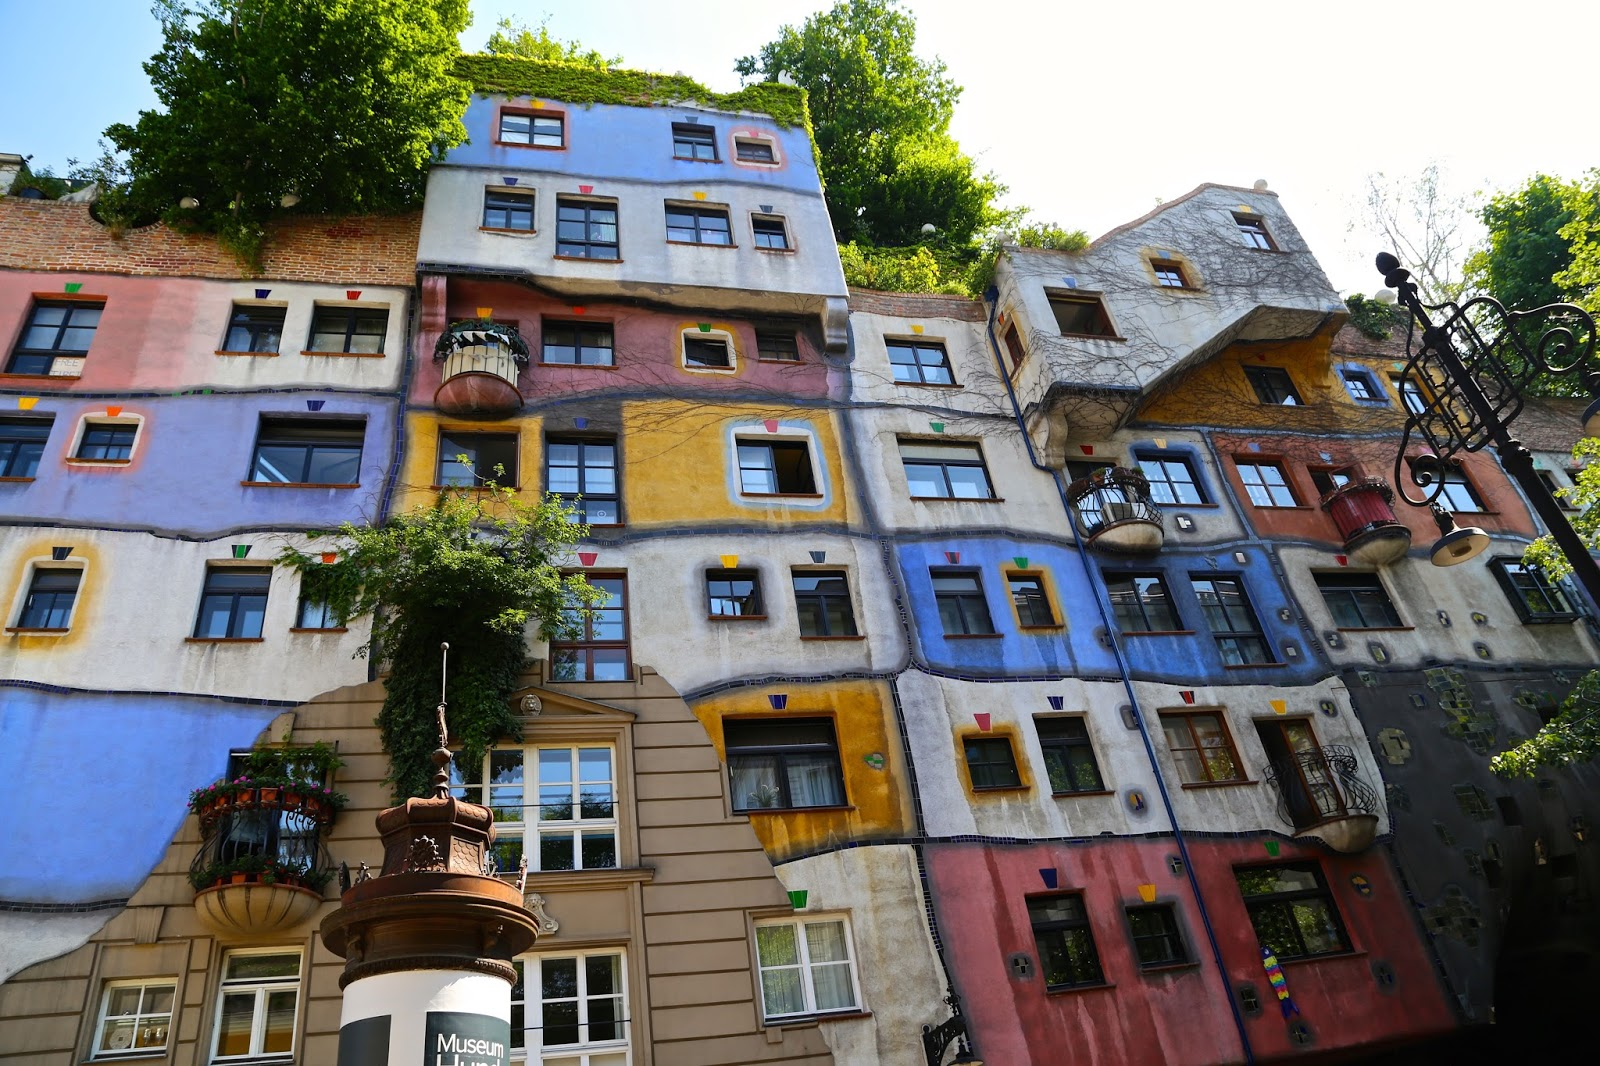 Msmarmitelover Travel Hundertwasser Buildings In Austria